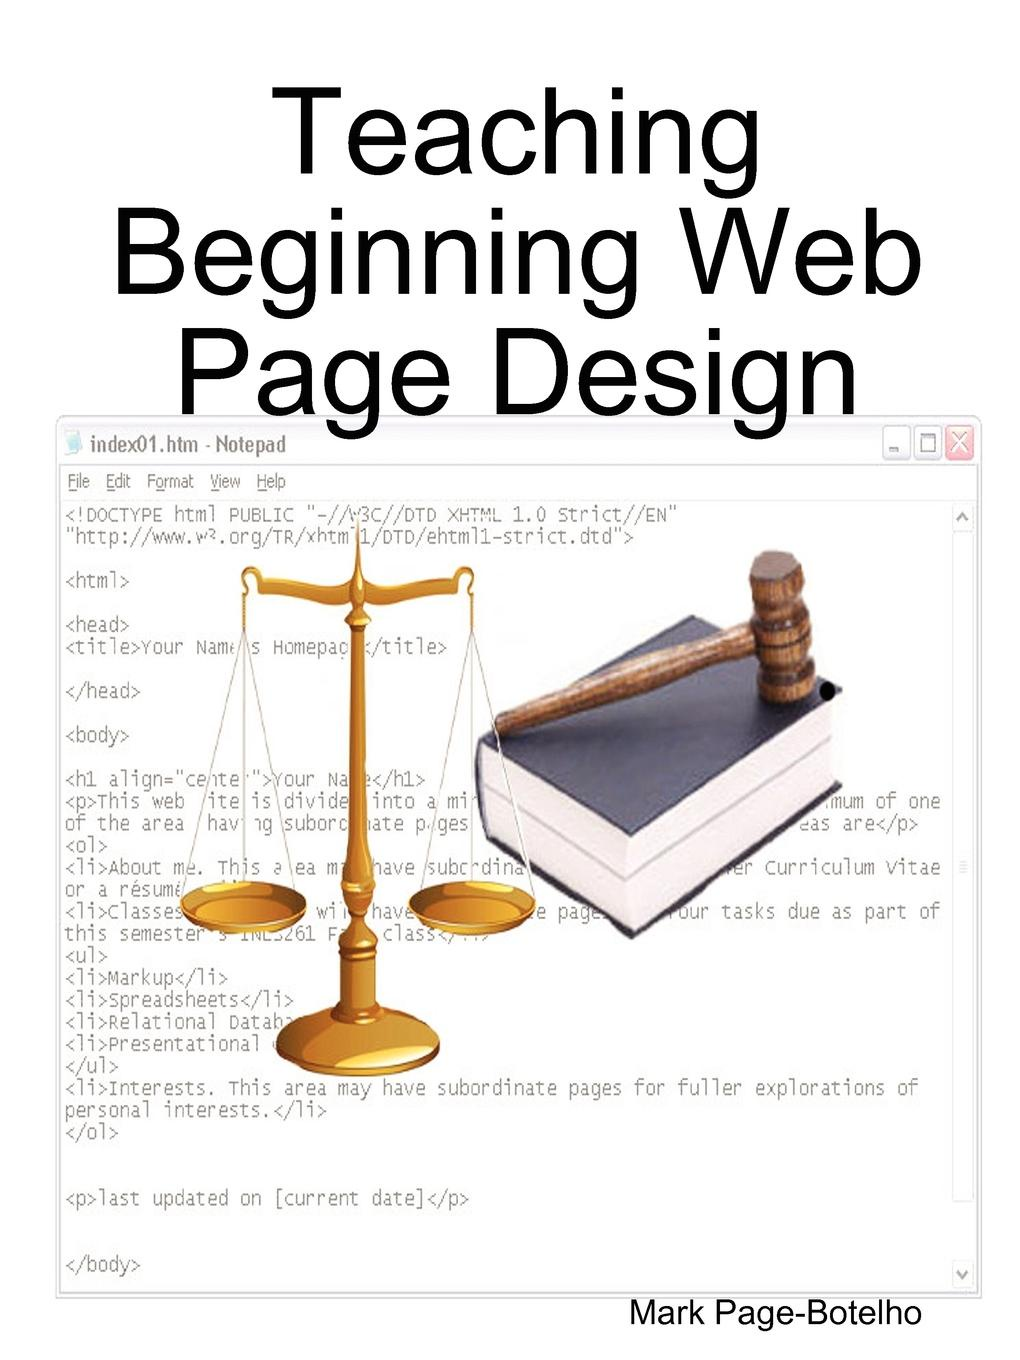 Mark Page-Botelho Teaching Beginning Web Page Design блуза love href page href page href page hrefhref page href page hrefhref page href page href href page hrefhref page href page hrefhrefhref href href href page href page href page hrefhref page 5